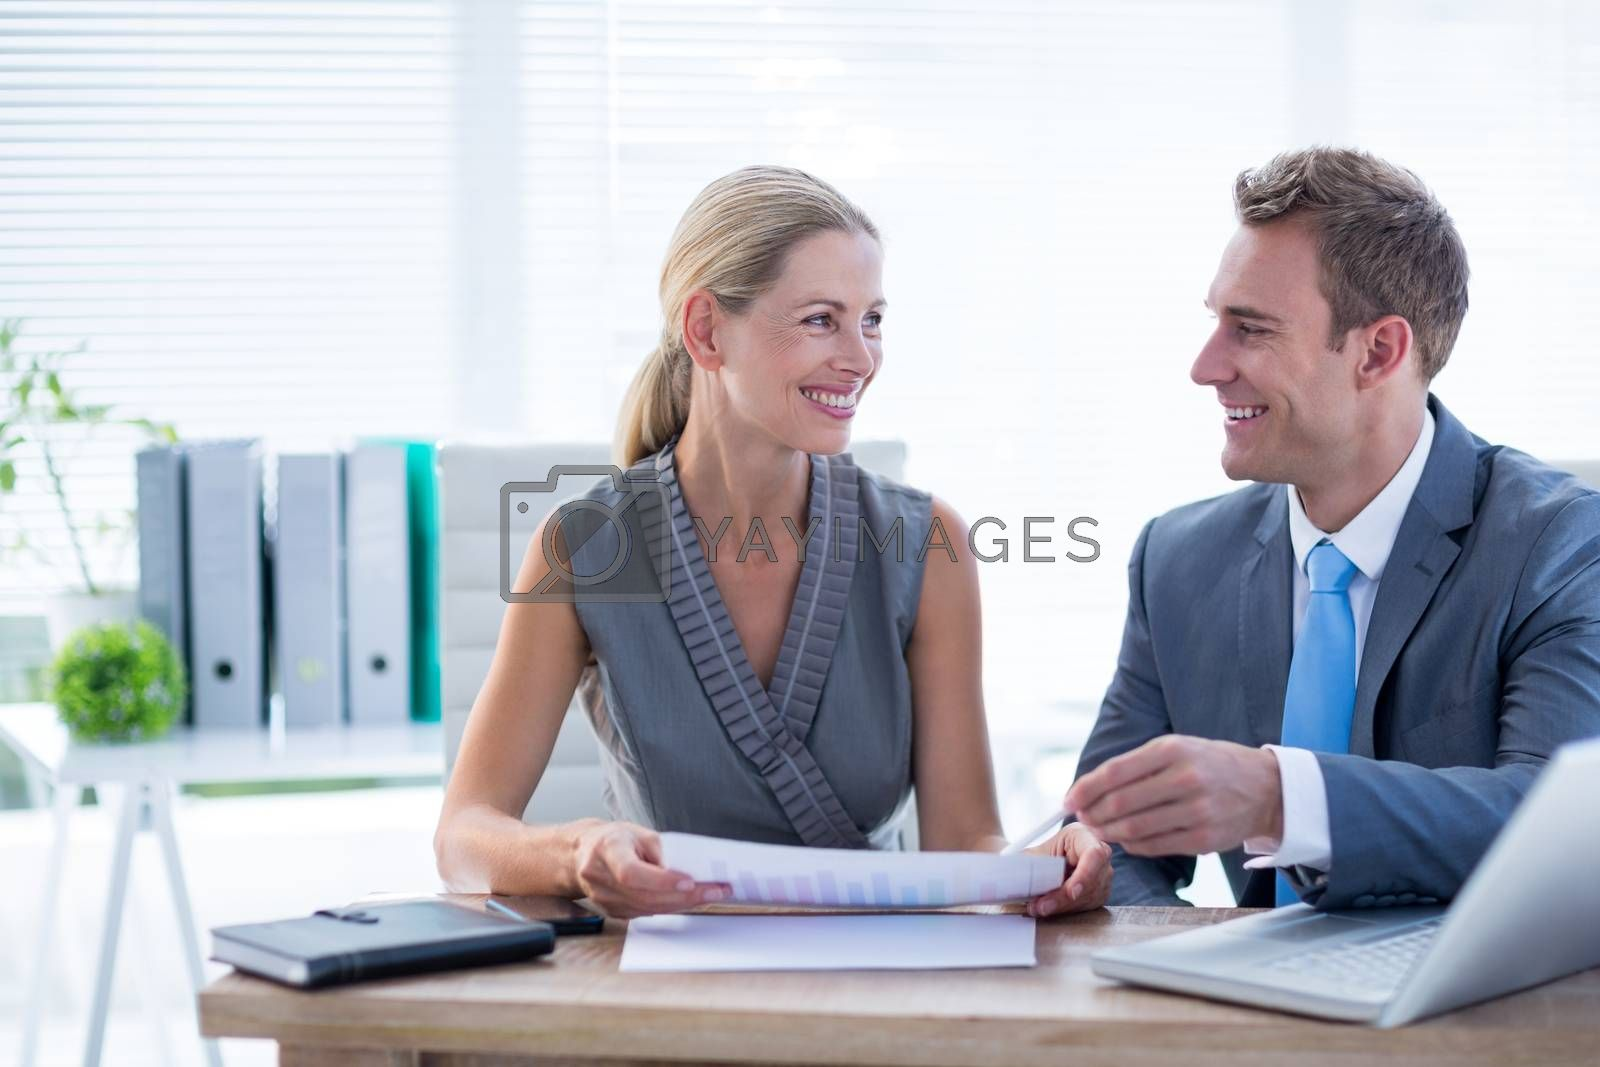 Royalty free image of Happy colleagues working together on laptop and folder by Wavebreakmedia